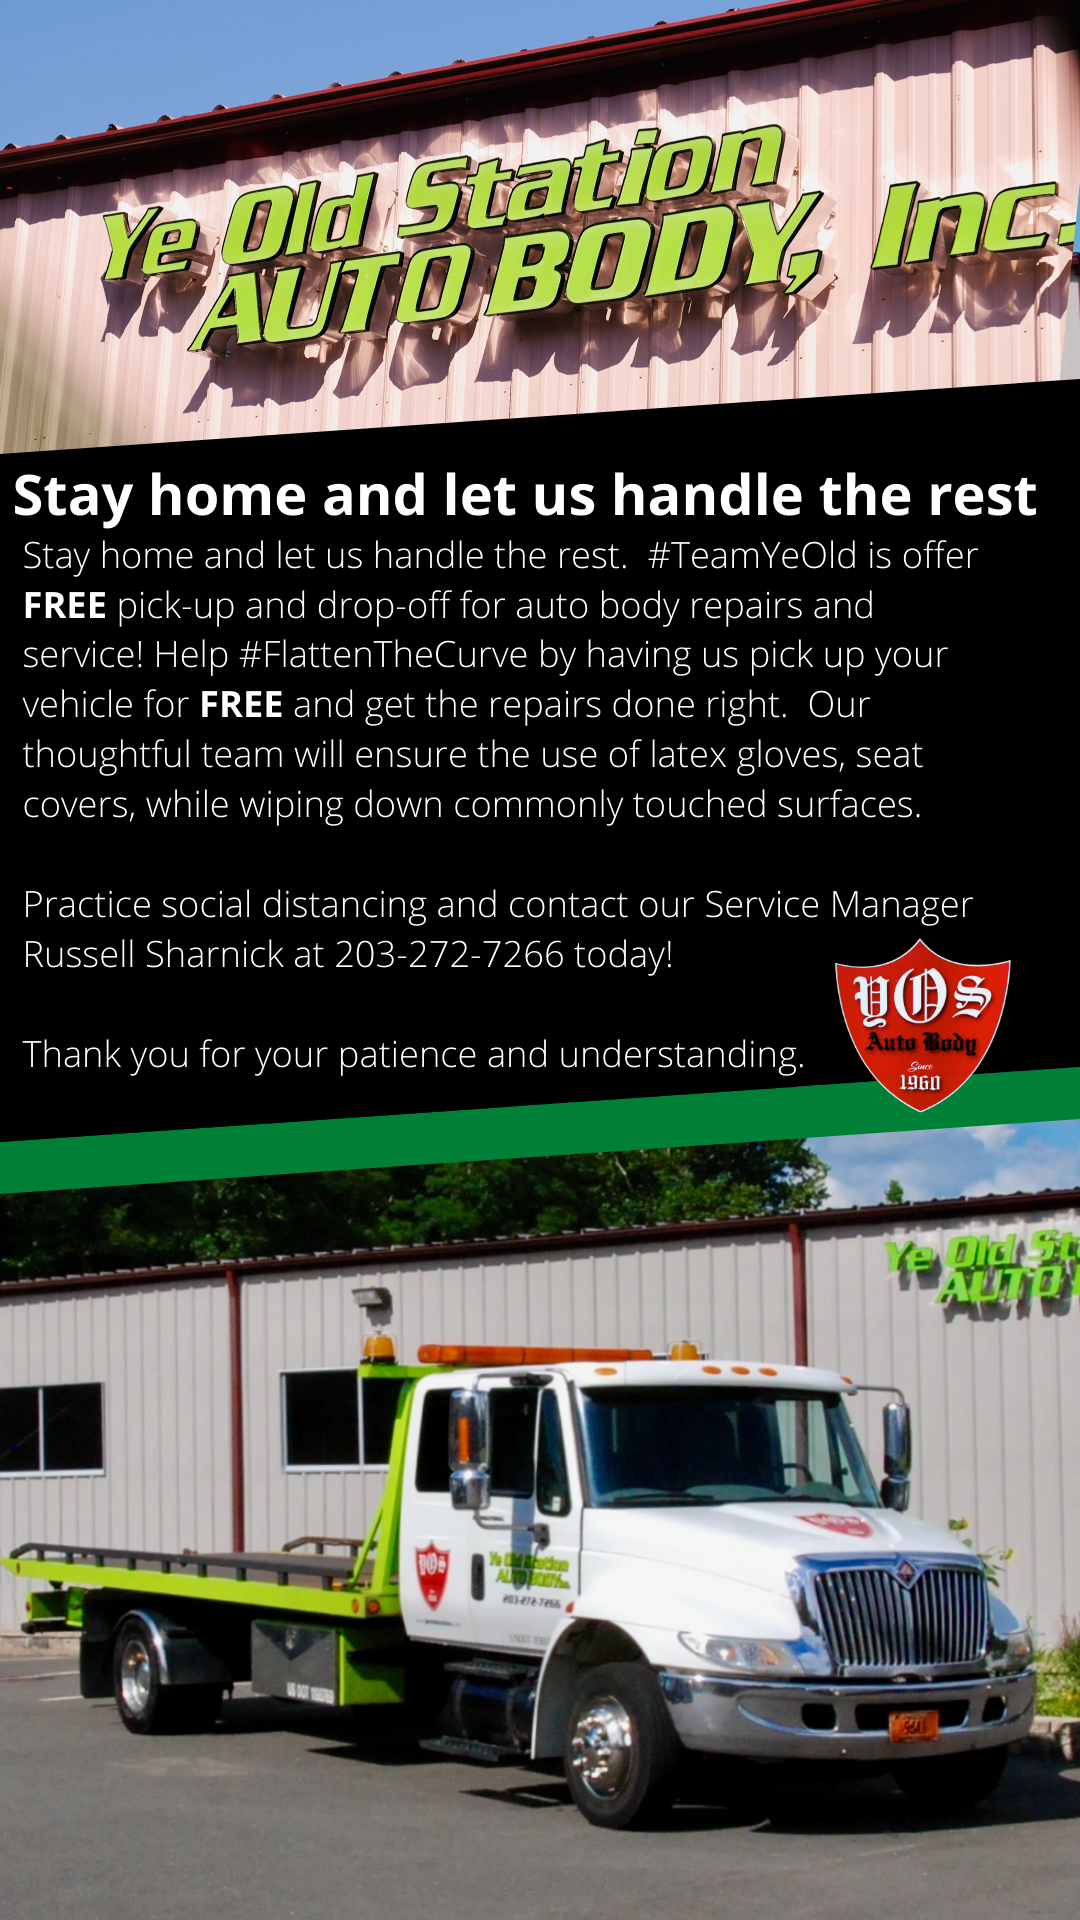 Steam Clean and Sanitize Your Vehicle